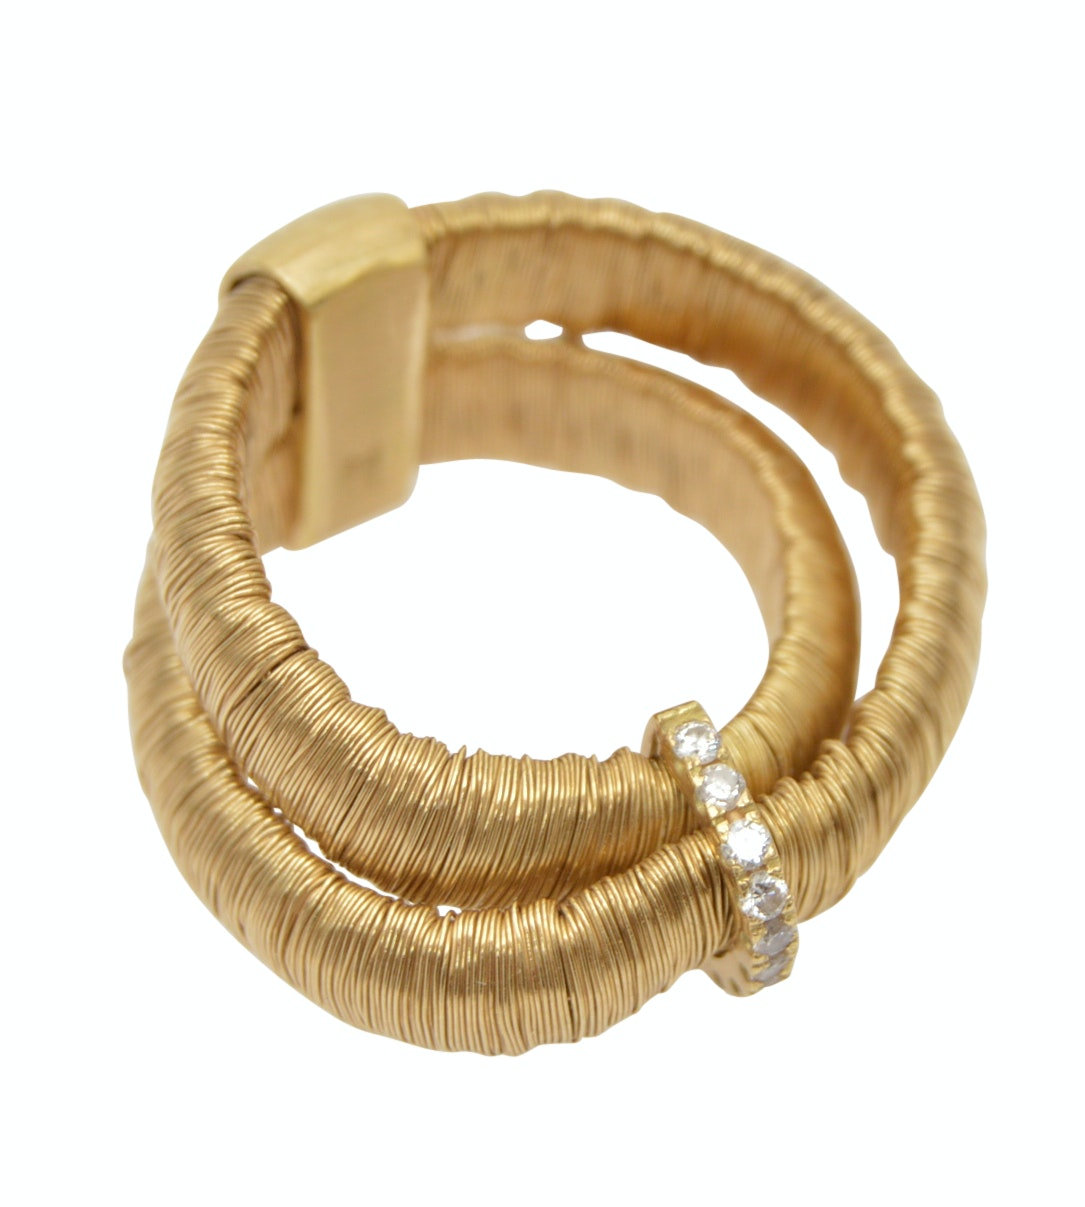 Yvel 18K Yellow Gold Diamond Wrapped Wire Double Ring